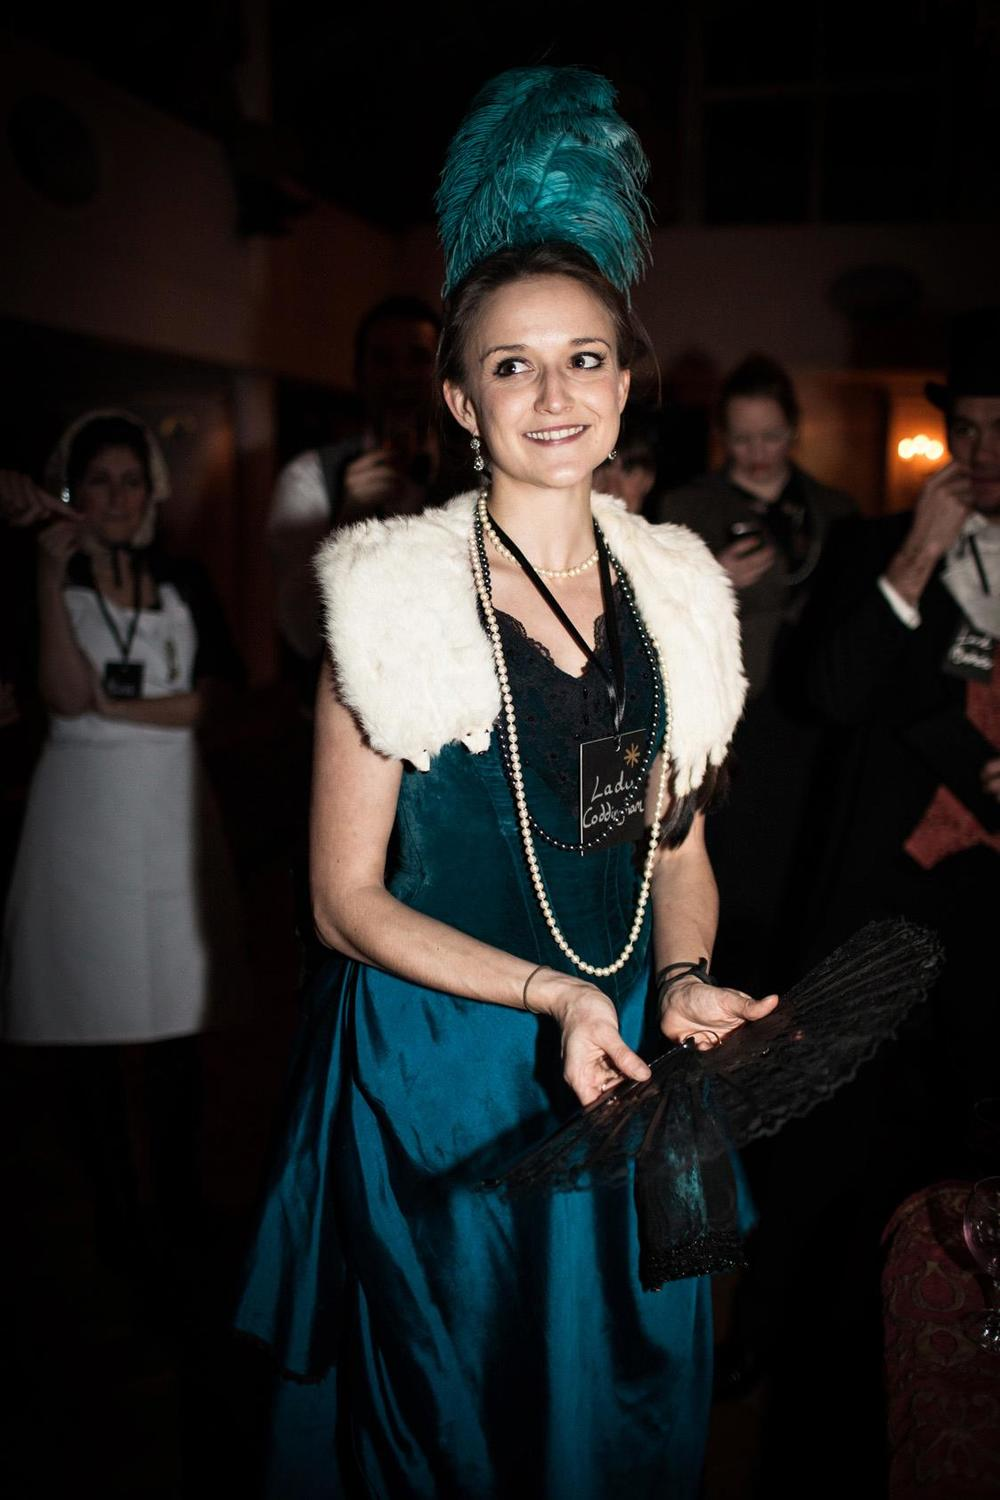 Elegance and refinment at a Victorian murder mystery evening